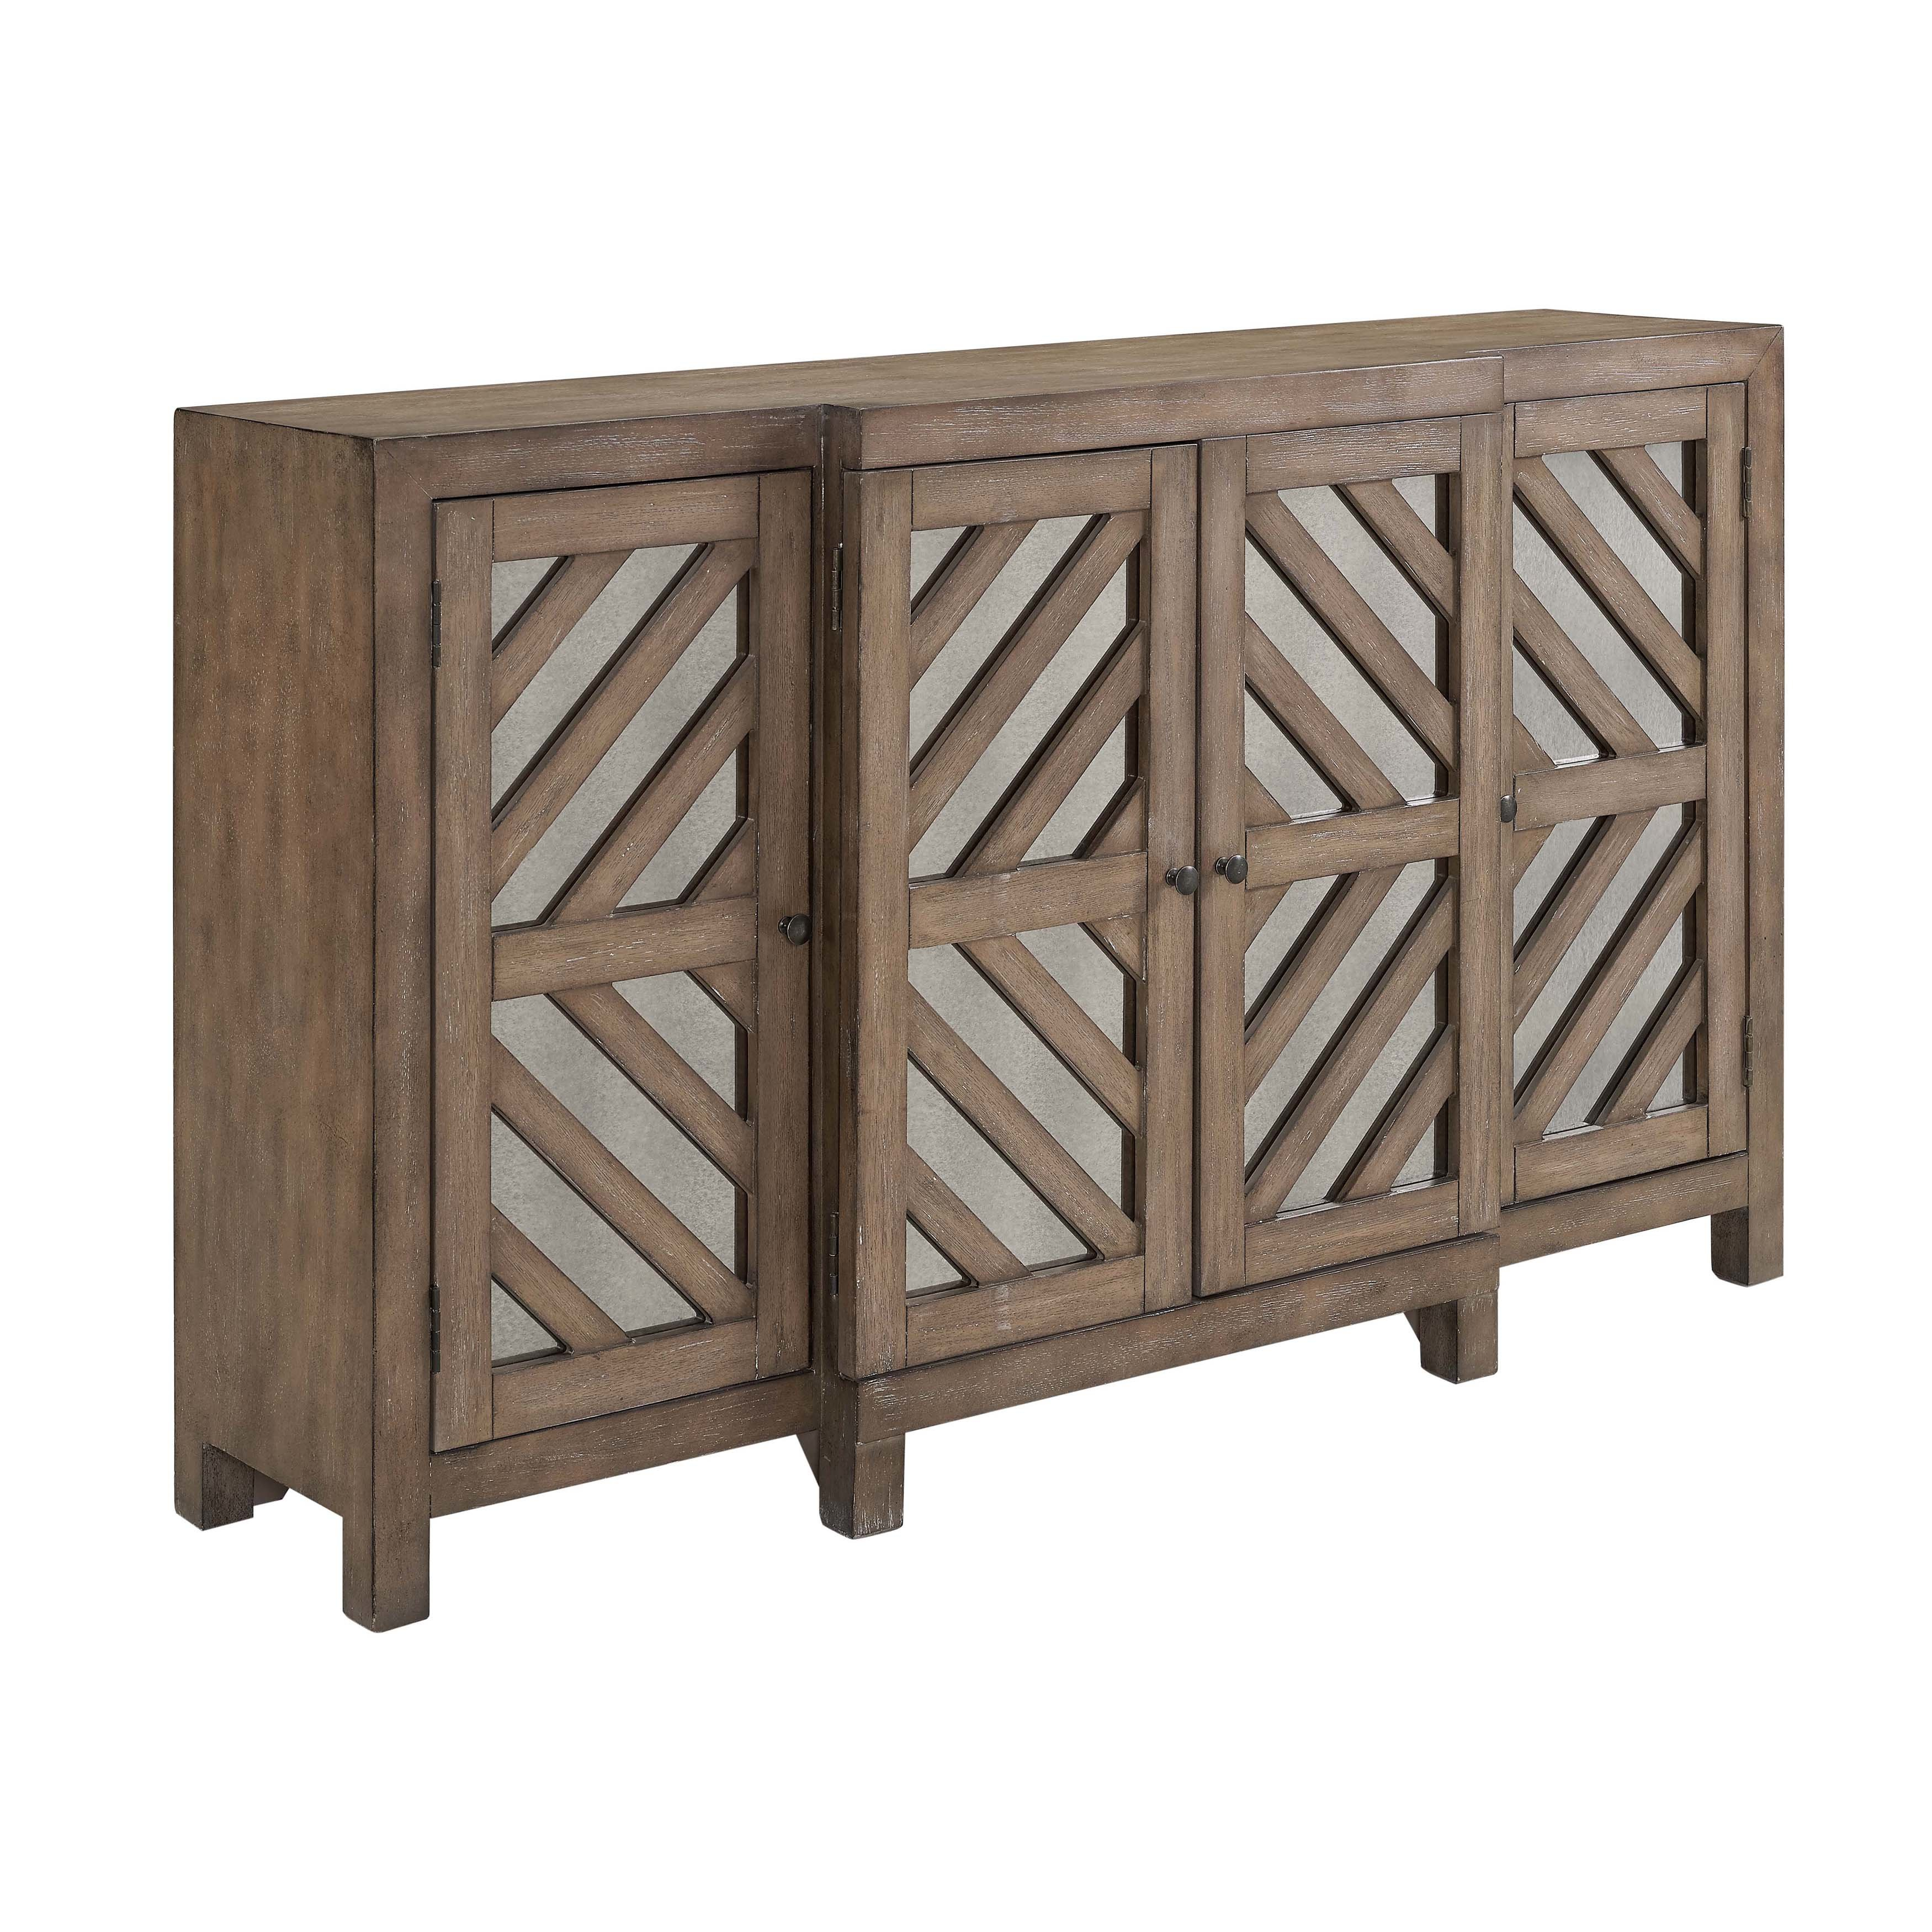 Farmhouse & Rustic Sideboards & Buffets | Birch Lane With Palisade Sideboards (View 8 of 30)